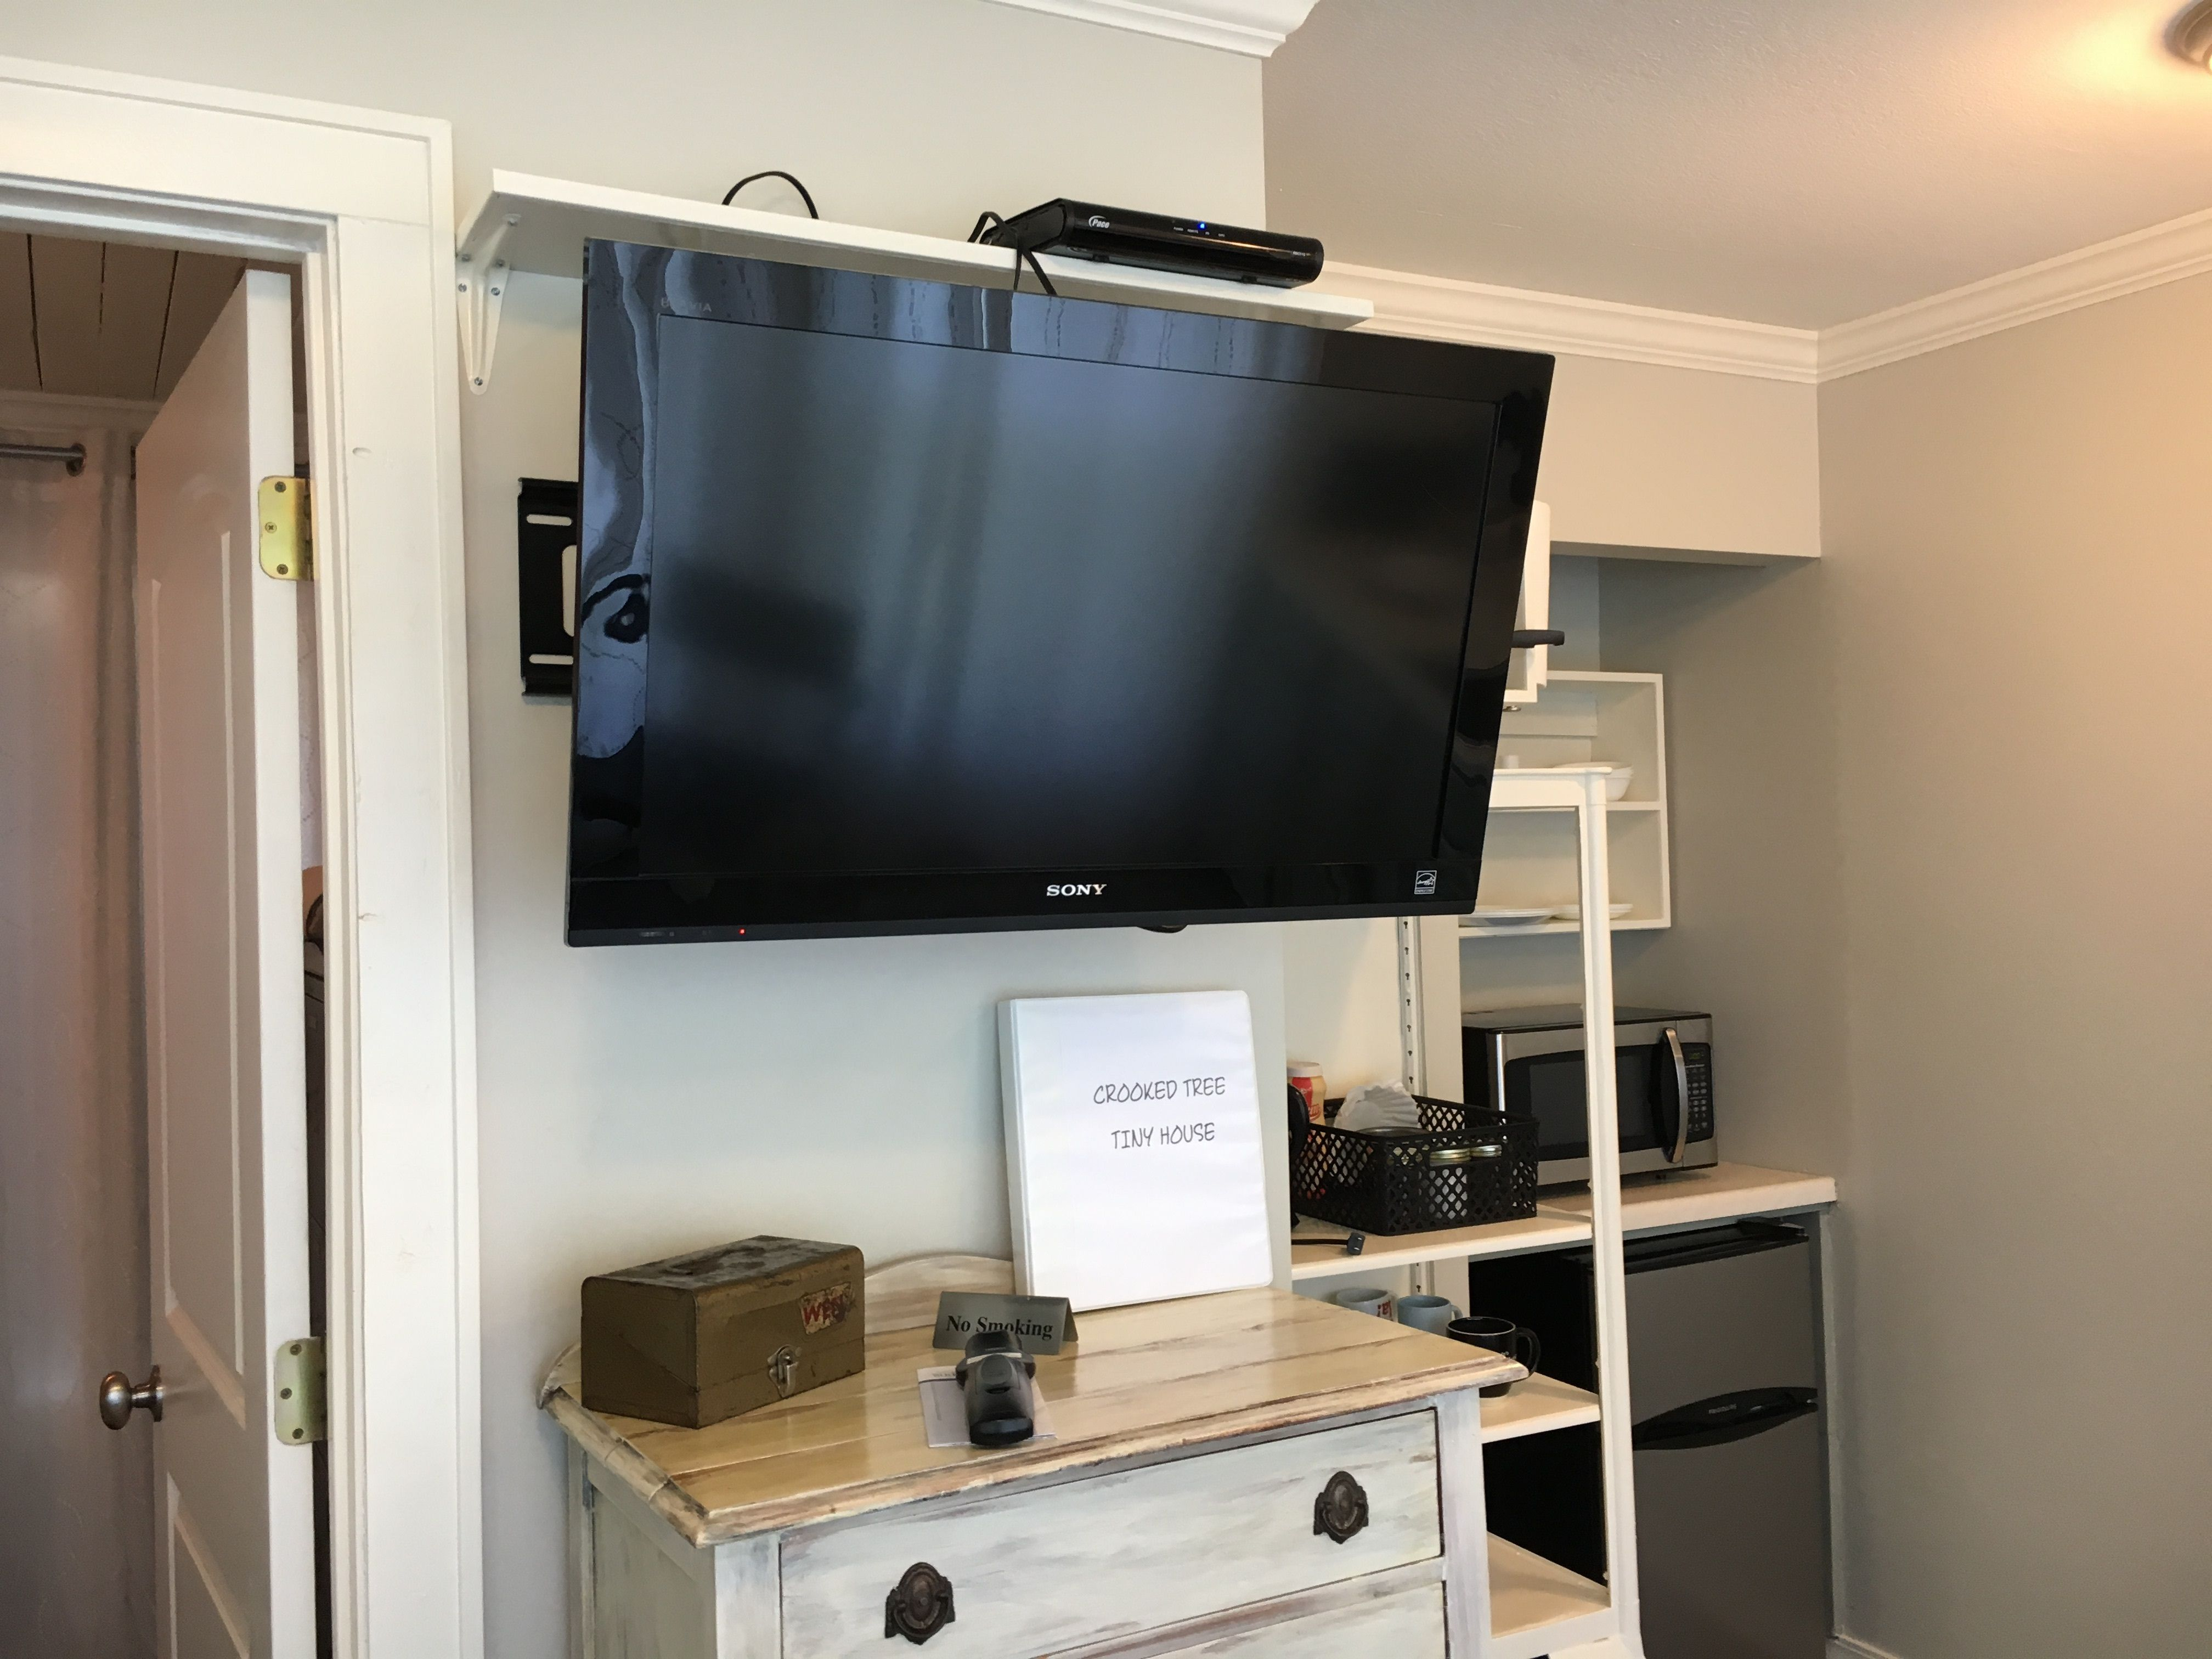 Mounting The Flat Screen Tv On The Wall Allows Us To View It From Different Places In The Living And Kitchen Ar Tiny House Furniture Tiny Houses For Rent House